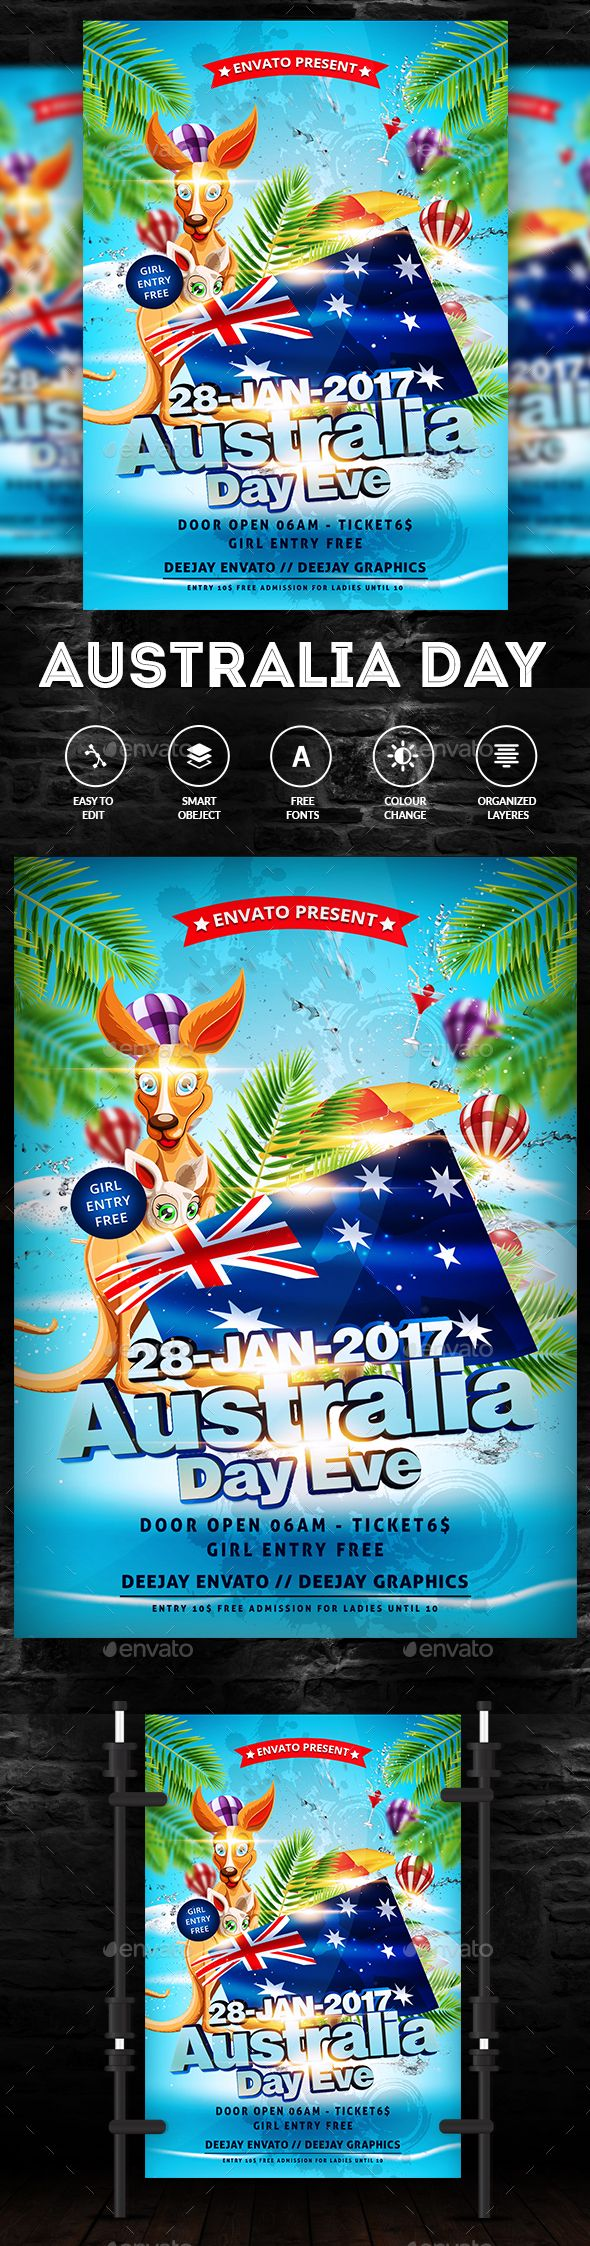 Australia Day Party Flyer Template PSD